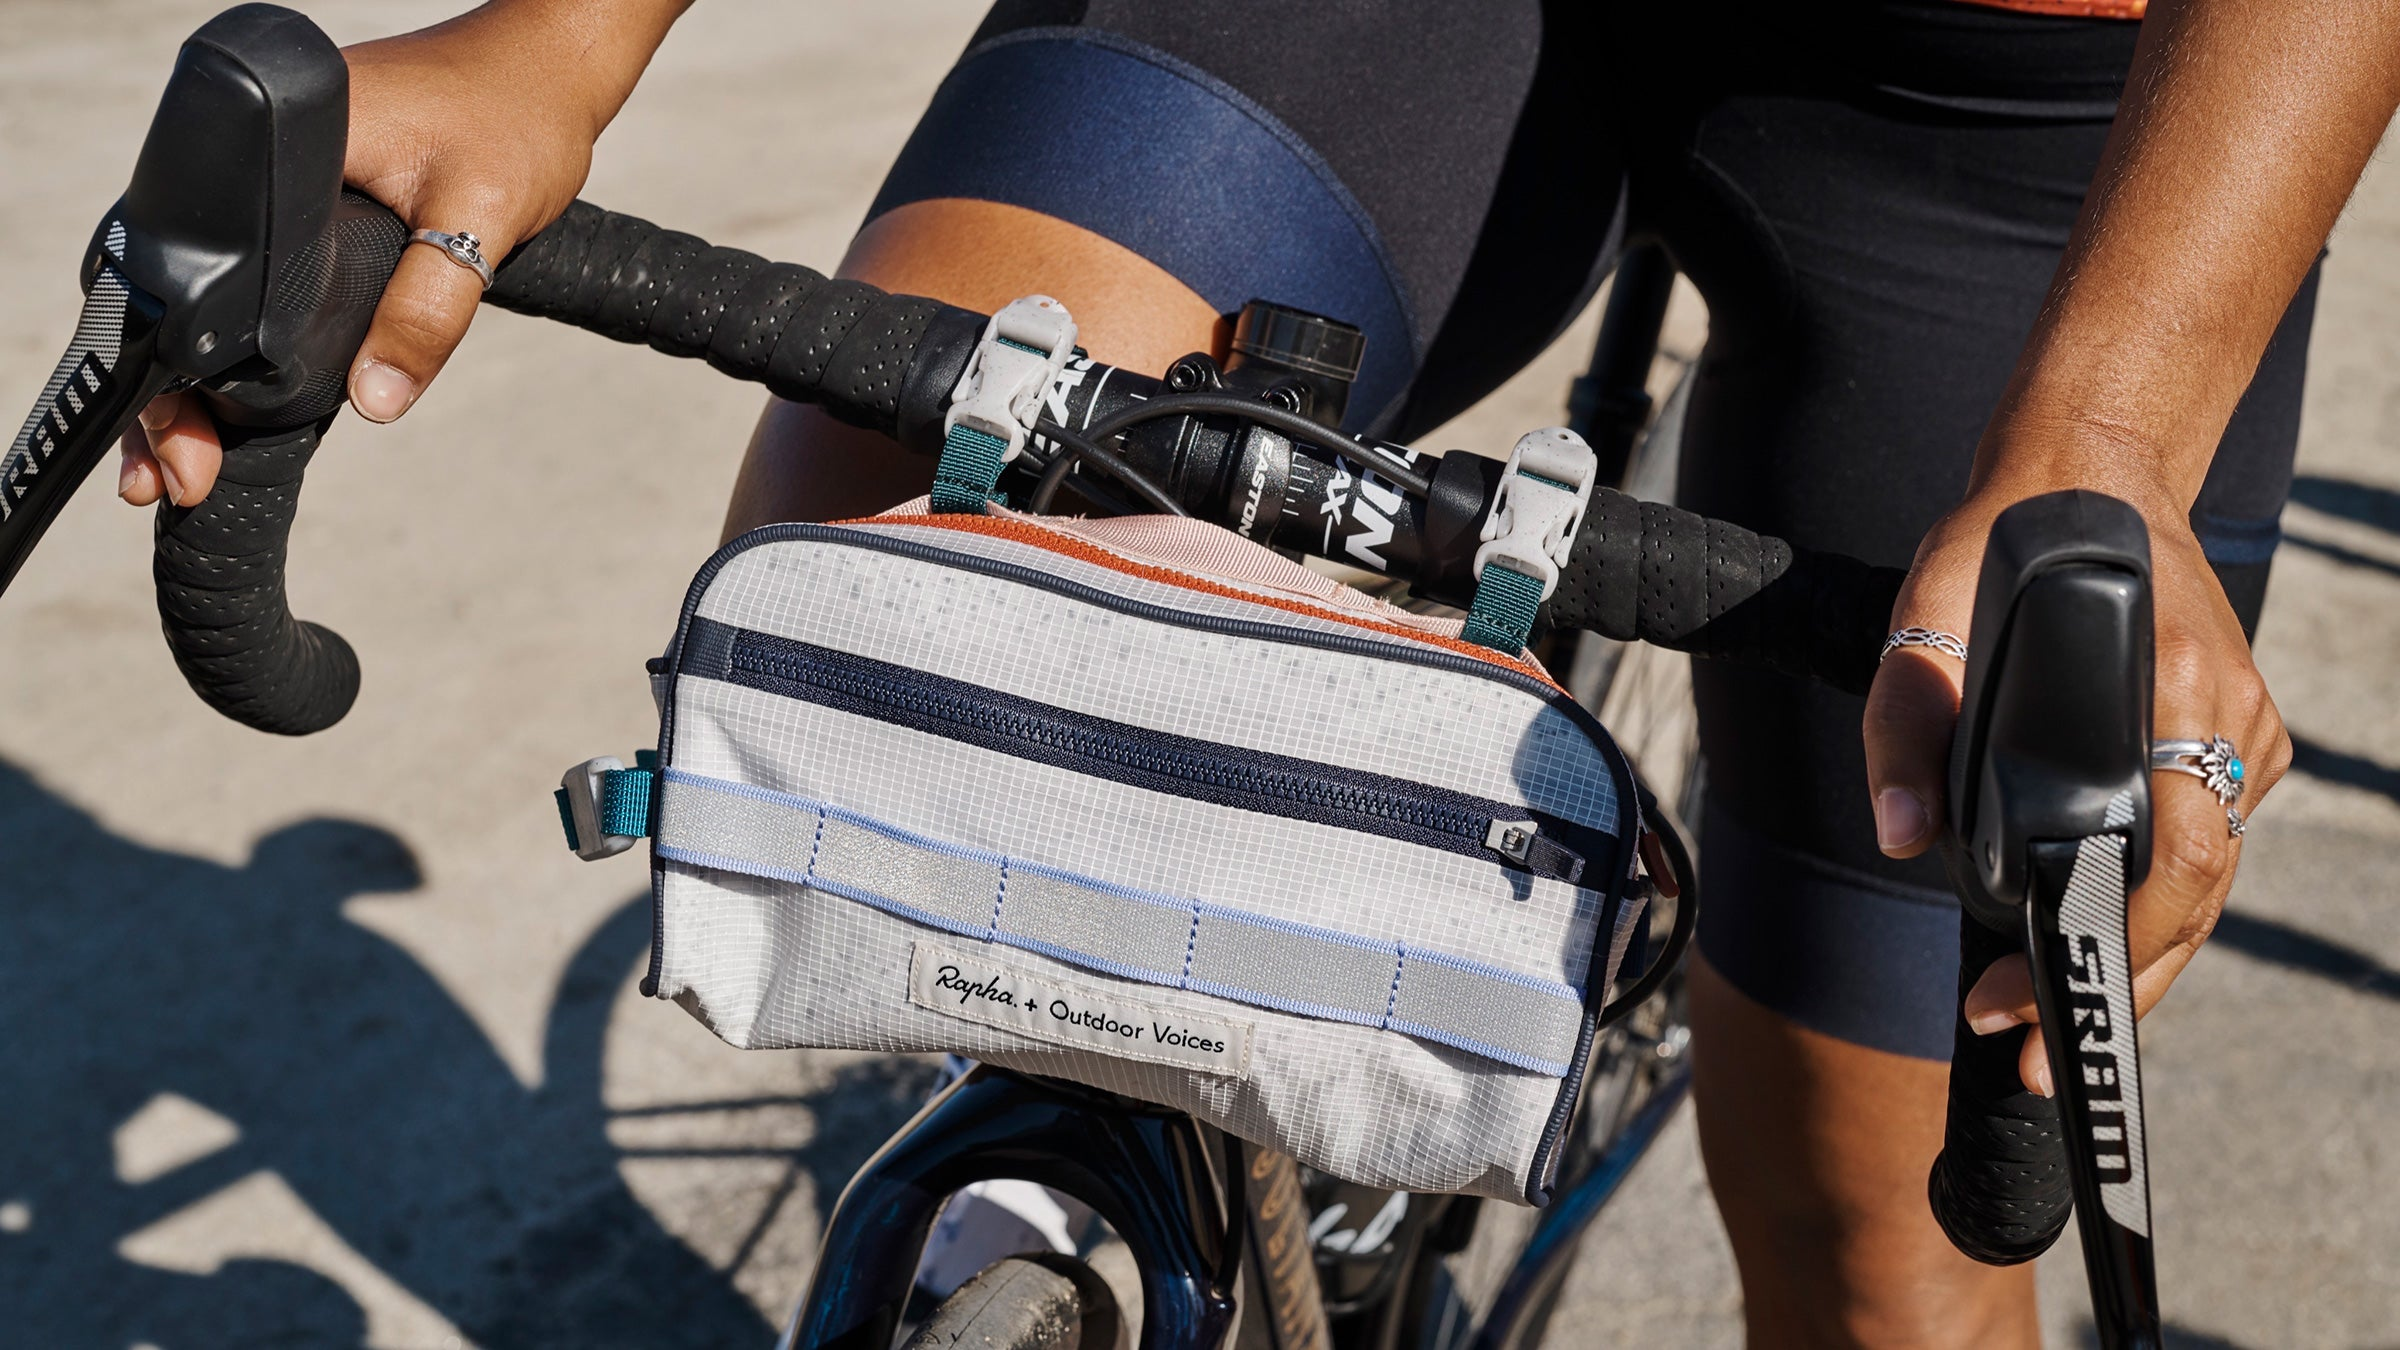 Rapha Outdoor Voices accessory bag